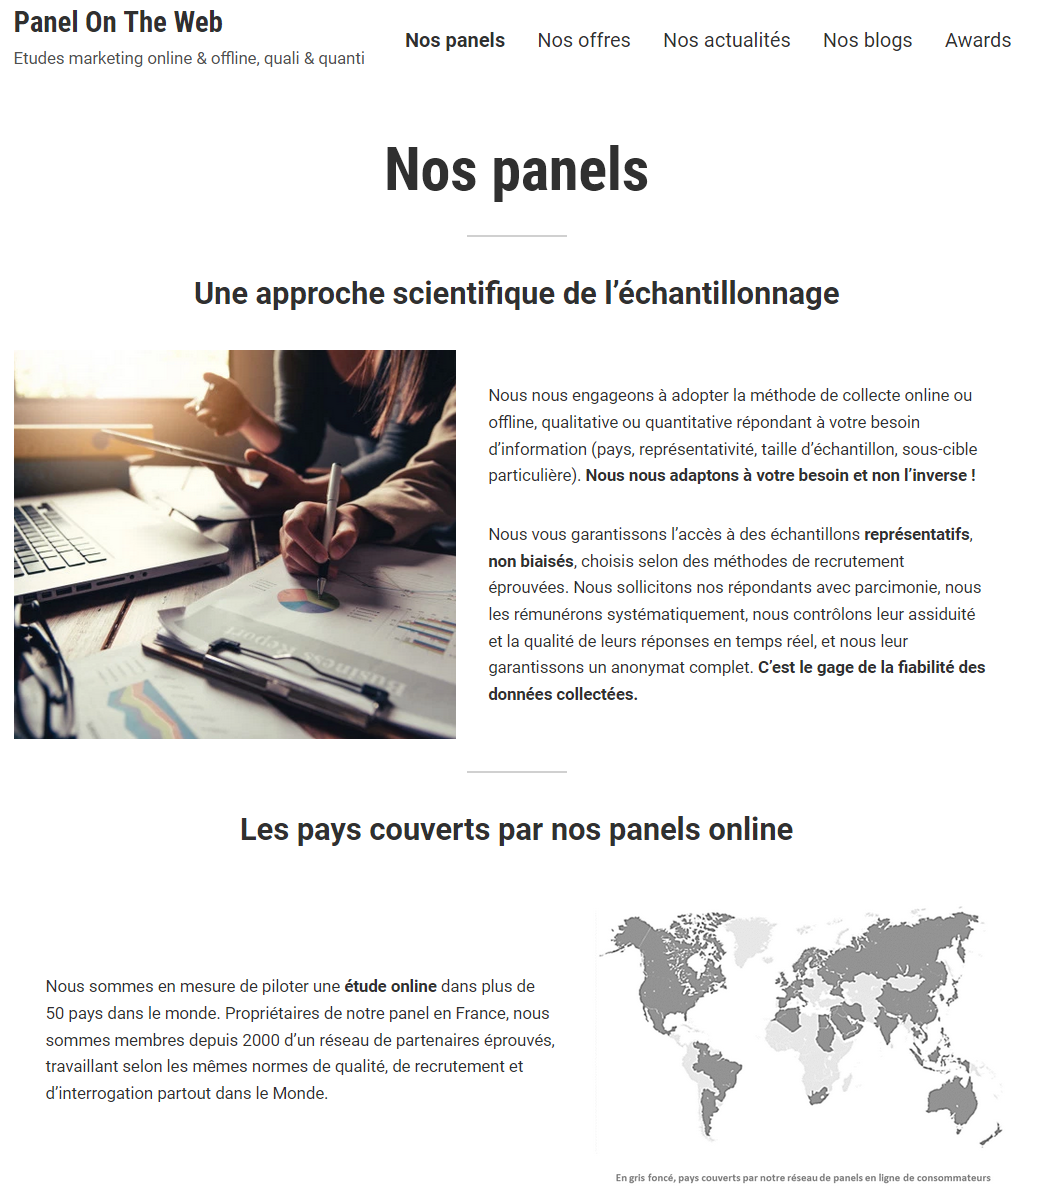 panel,marketing,etude,online,consommateur,market research,insight,questionnaire,sondage,opinion,publicite,produit,distribution,fabricant,annonceur